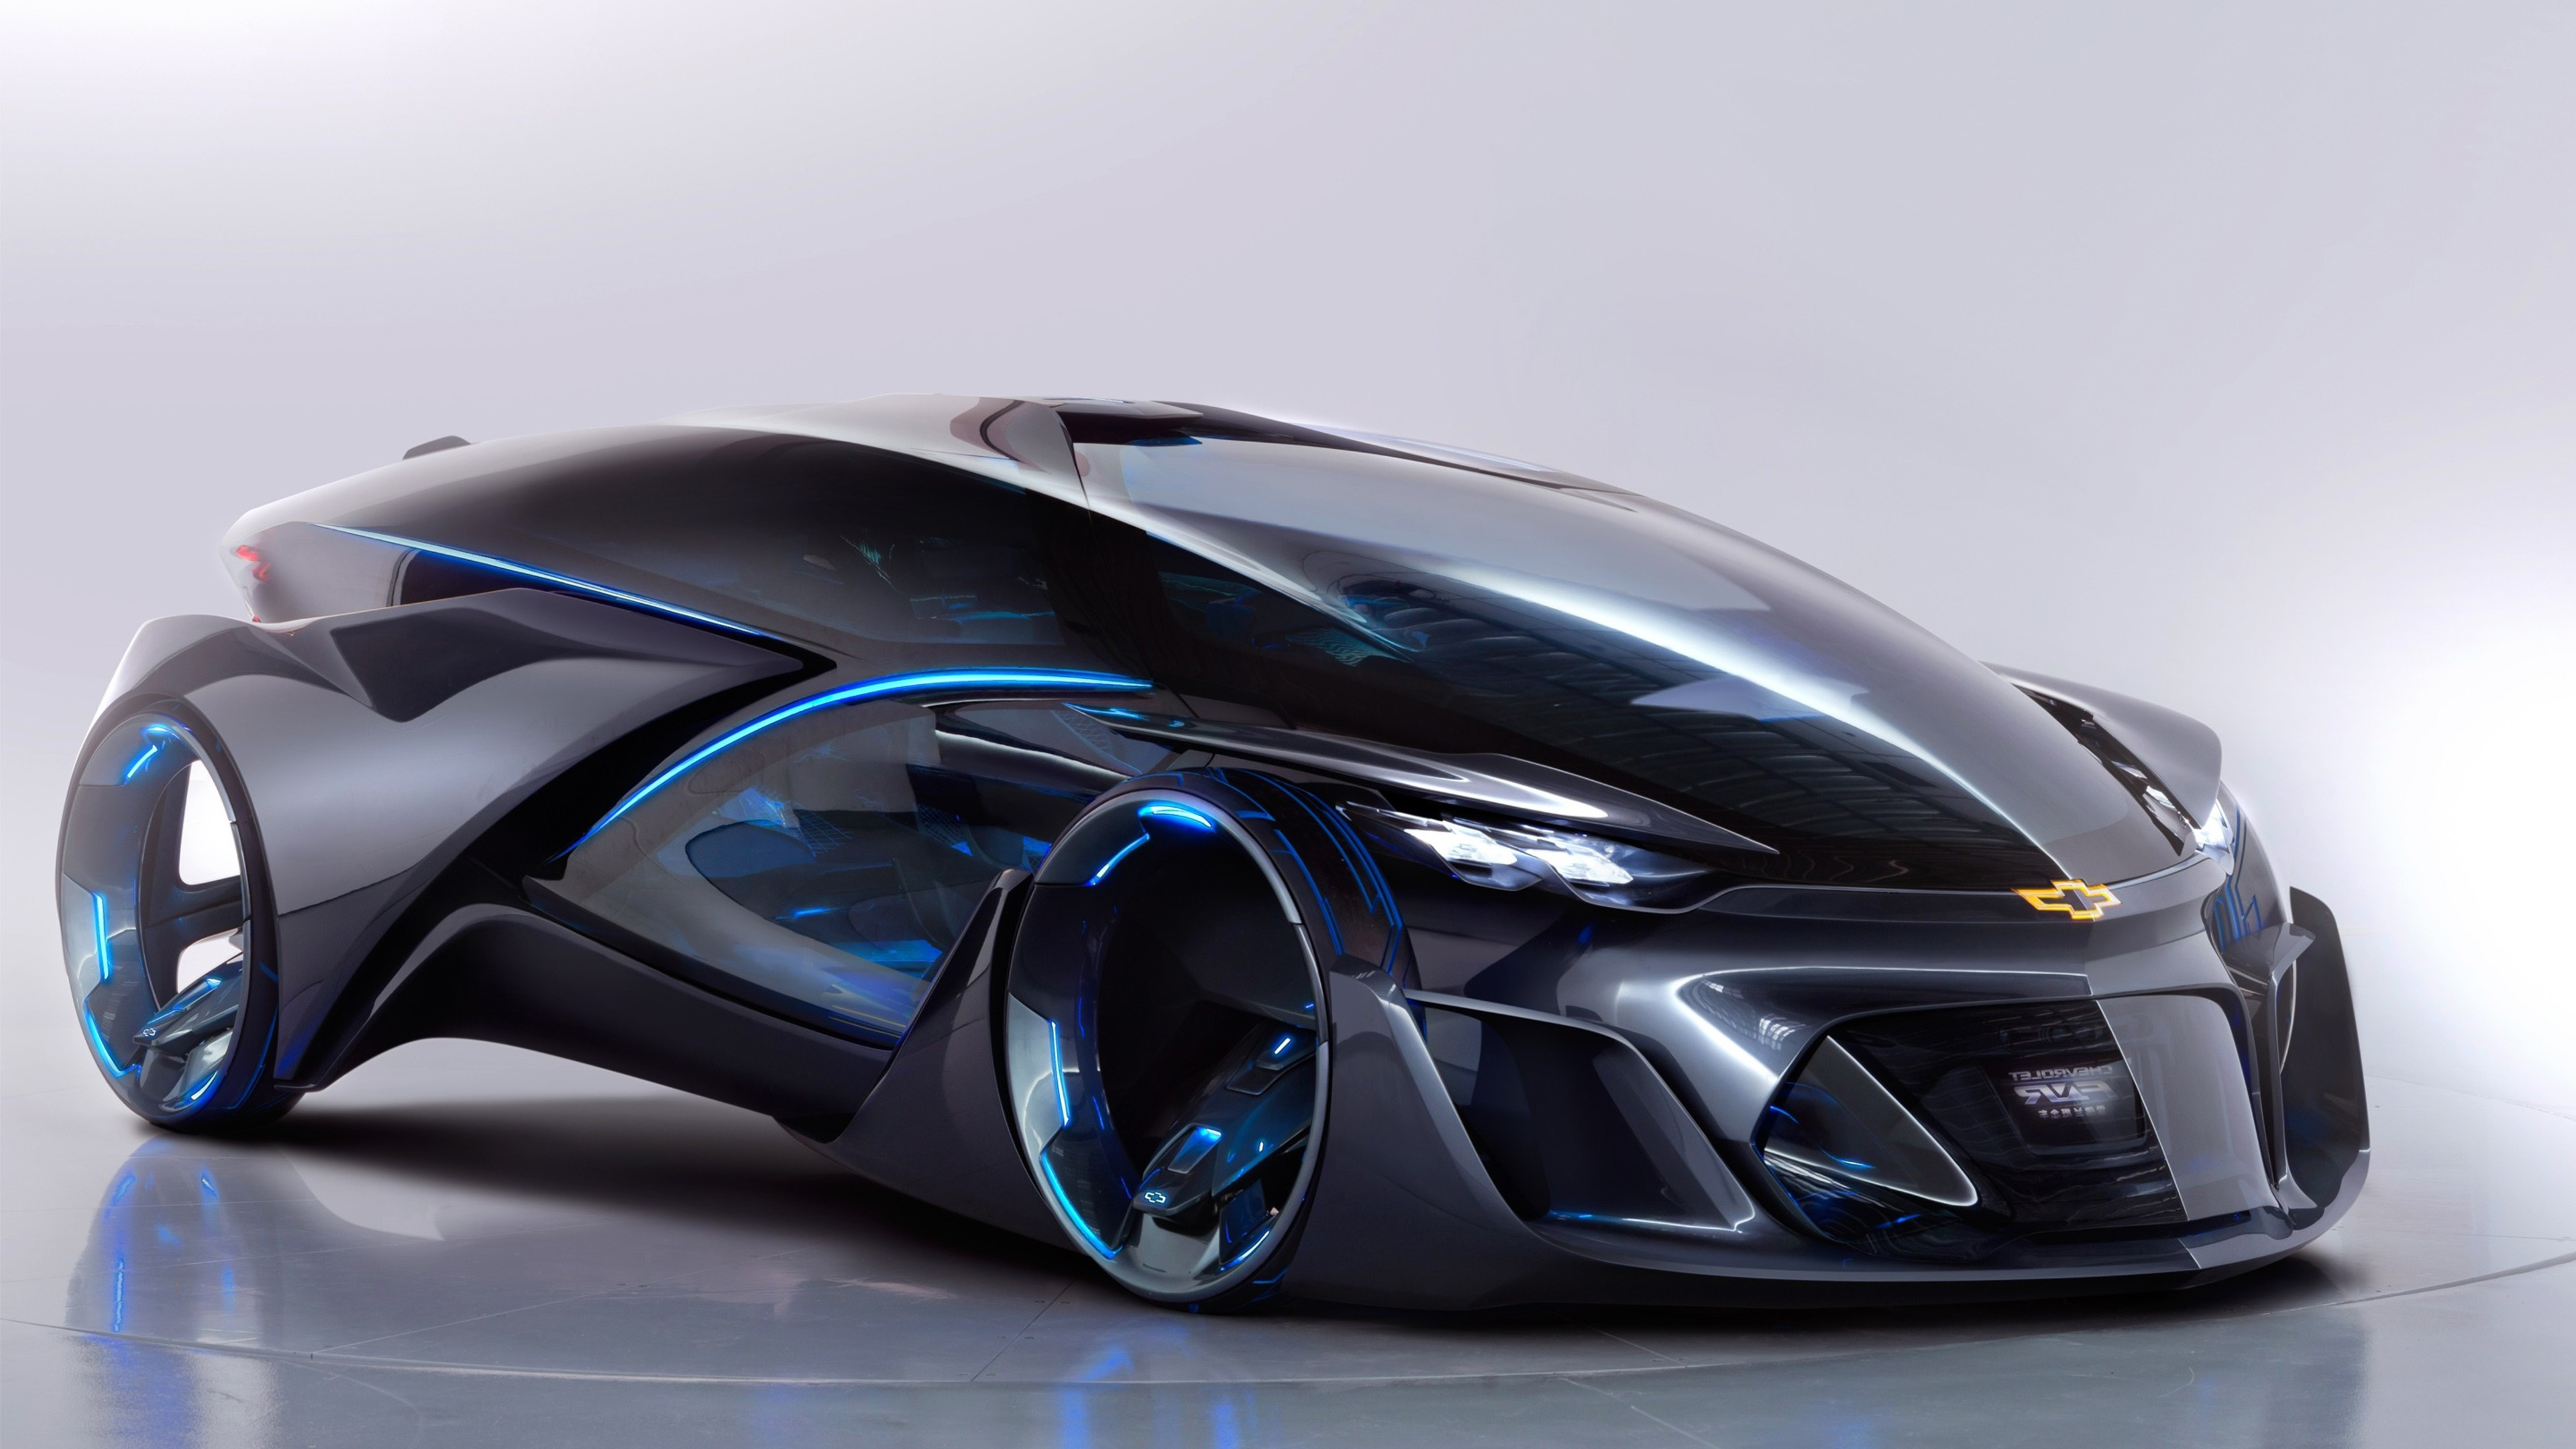 Chevrolet Fnr Concept Car Hd Cars 4k Wallpapers Images